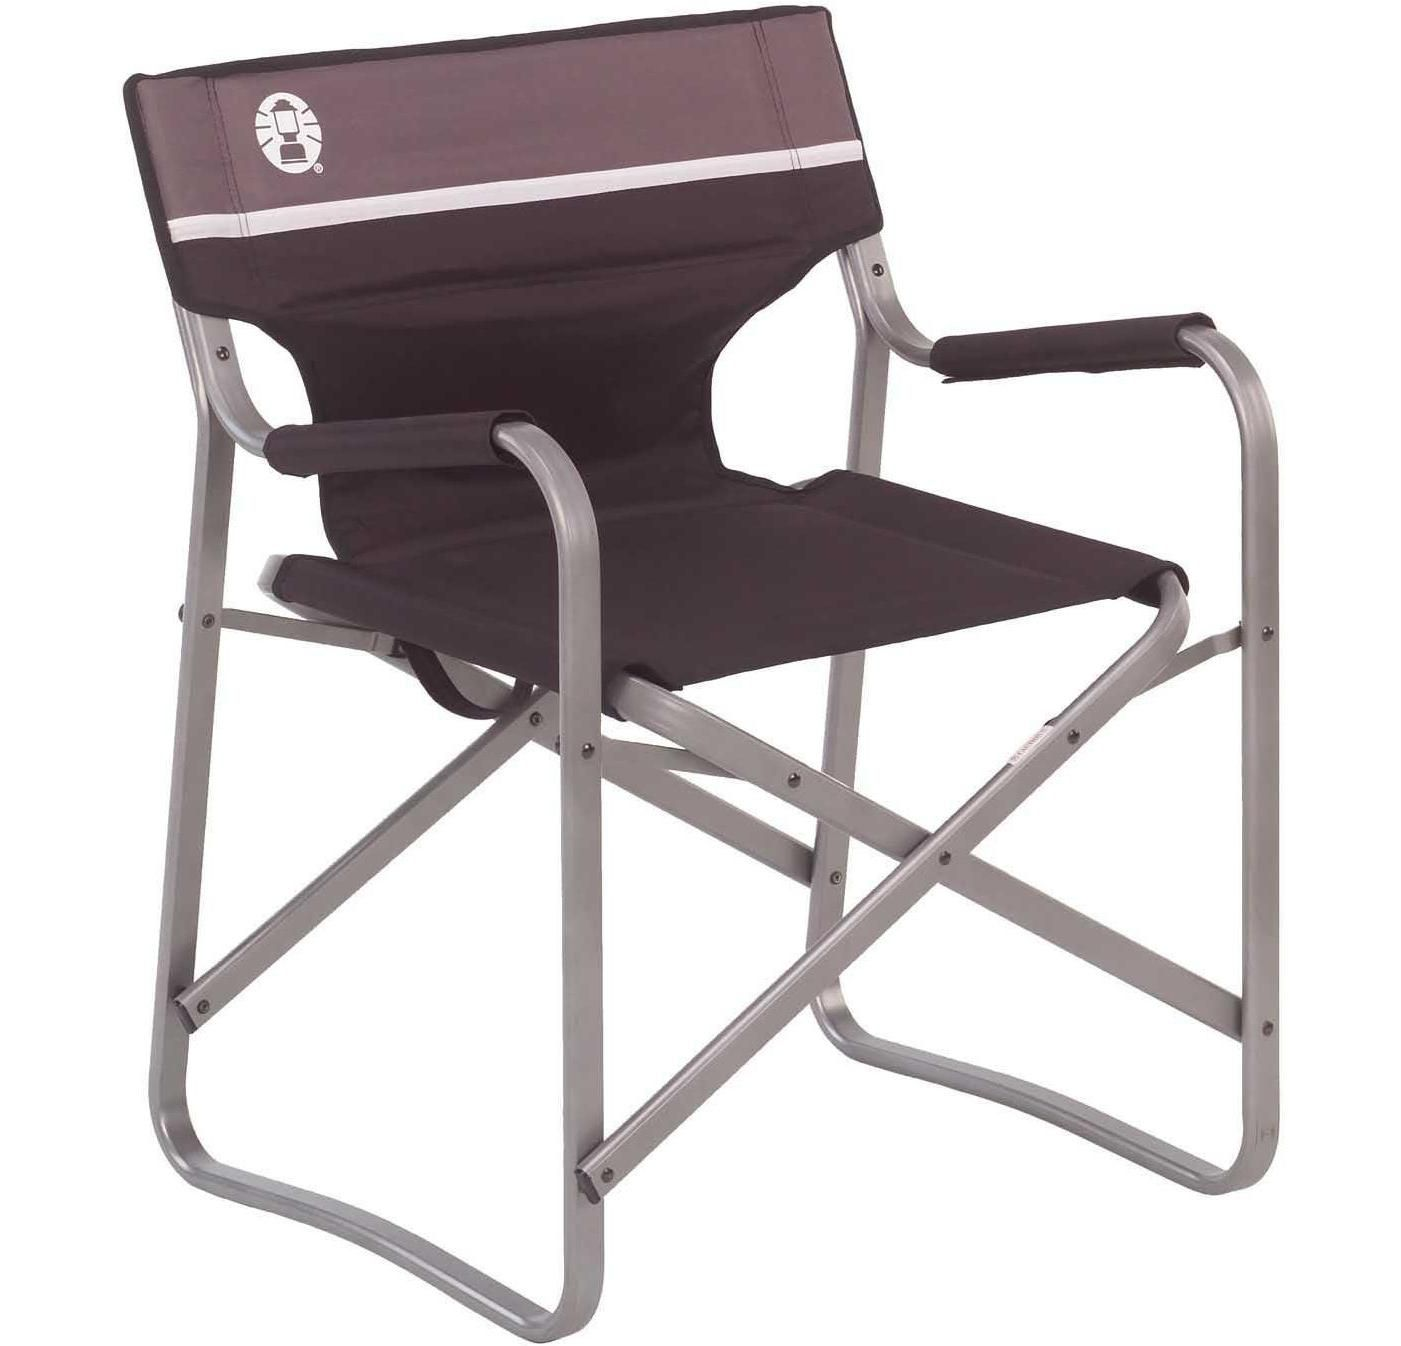 Coleman Deck Chair With Out Table Outdoor Folding Chairs Deck Chairs Camping Table